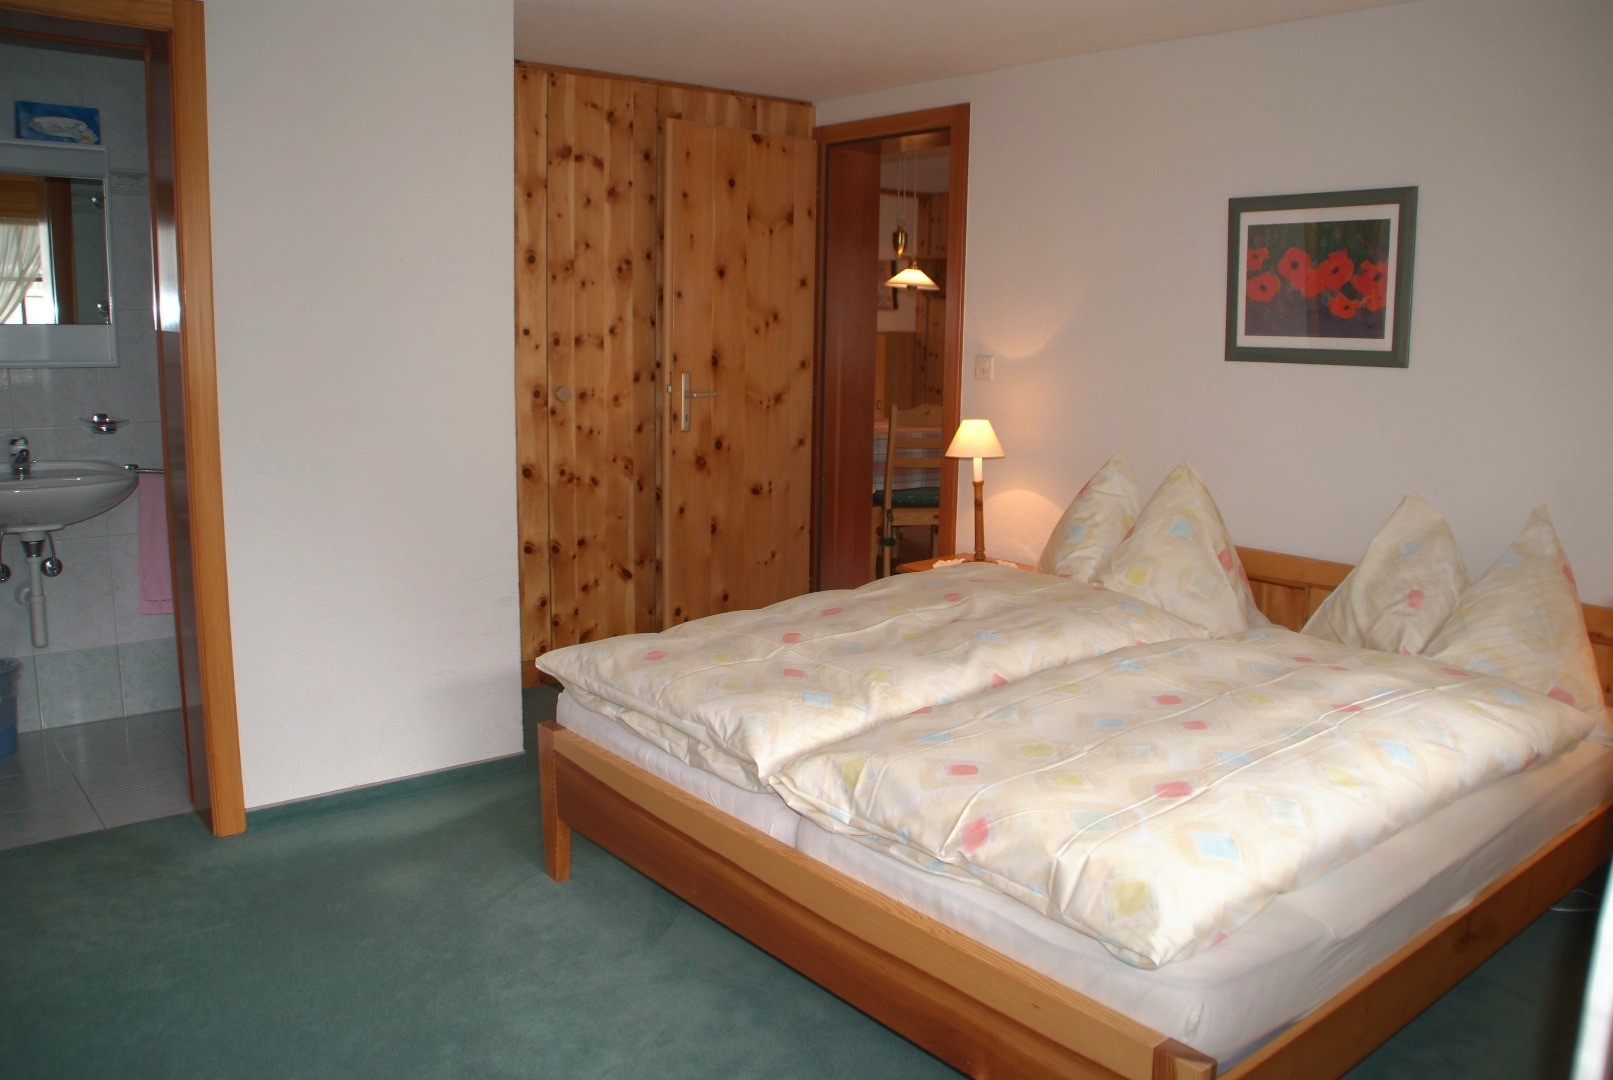 DentBlancheMettelhornBedroom.jpg